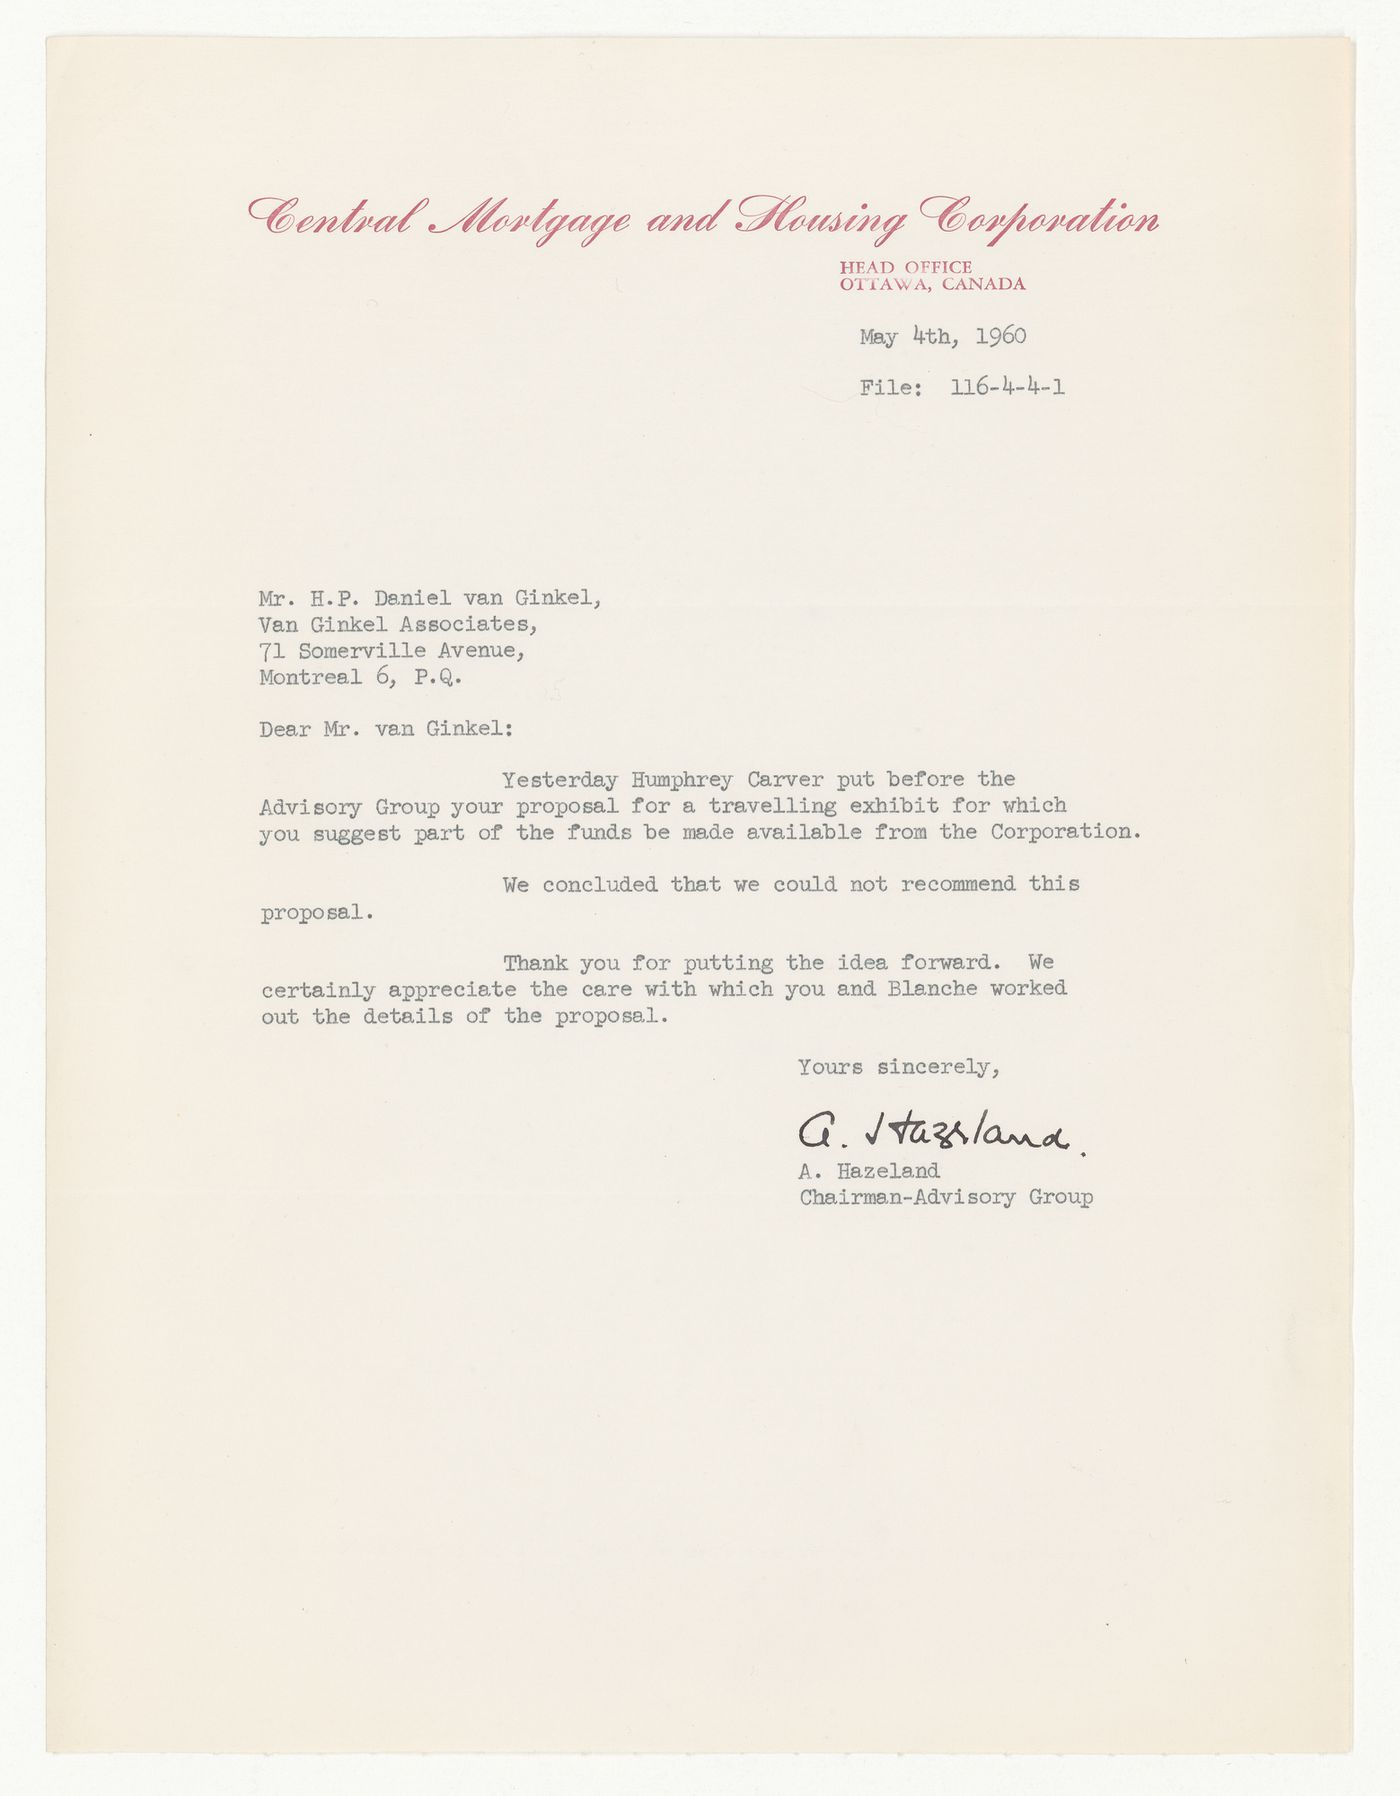 Letter from A. Hazeland to H. P. Daniel van Ginkel for CMHC Exhibition